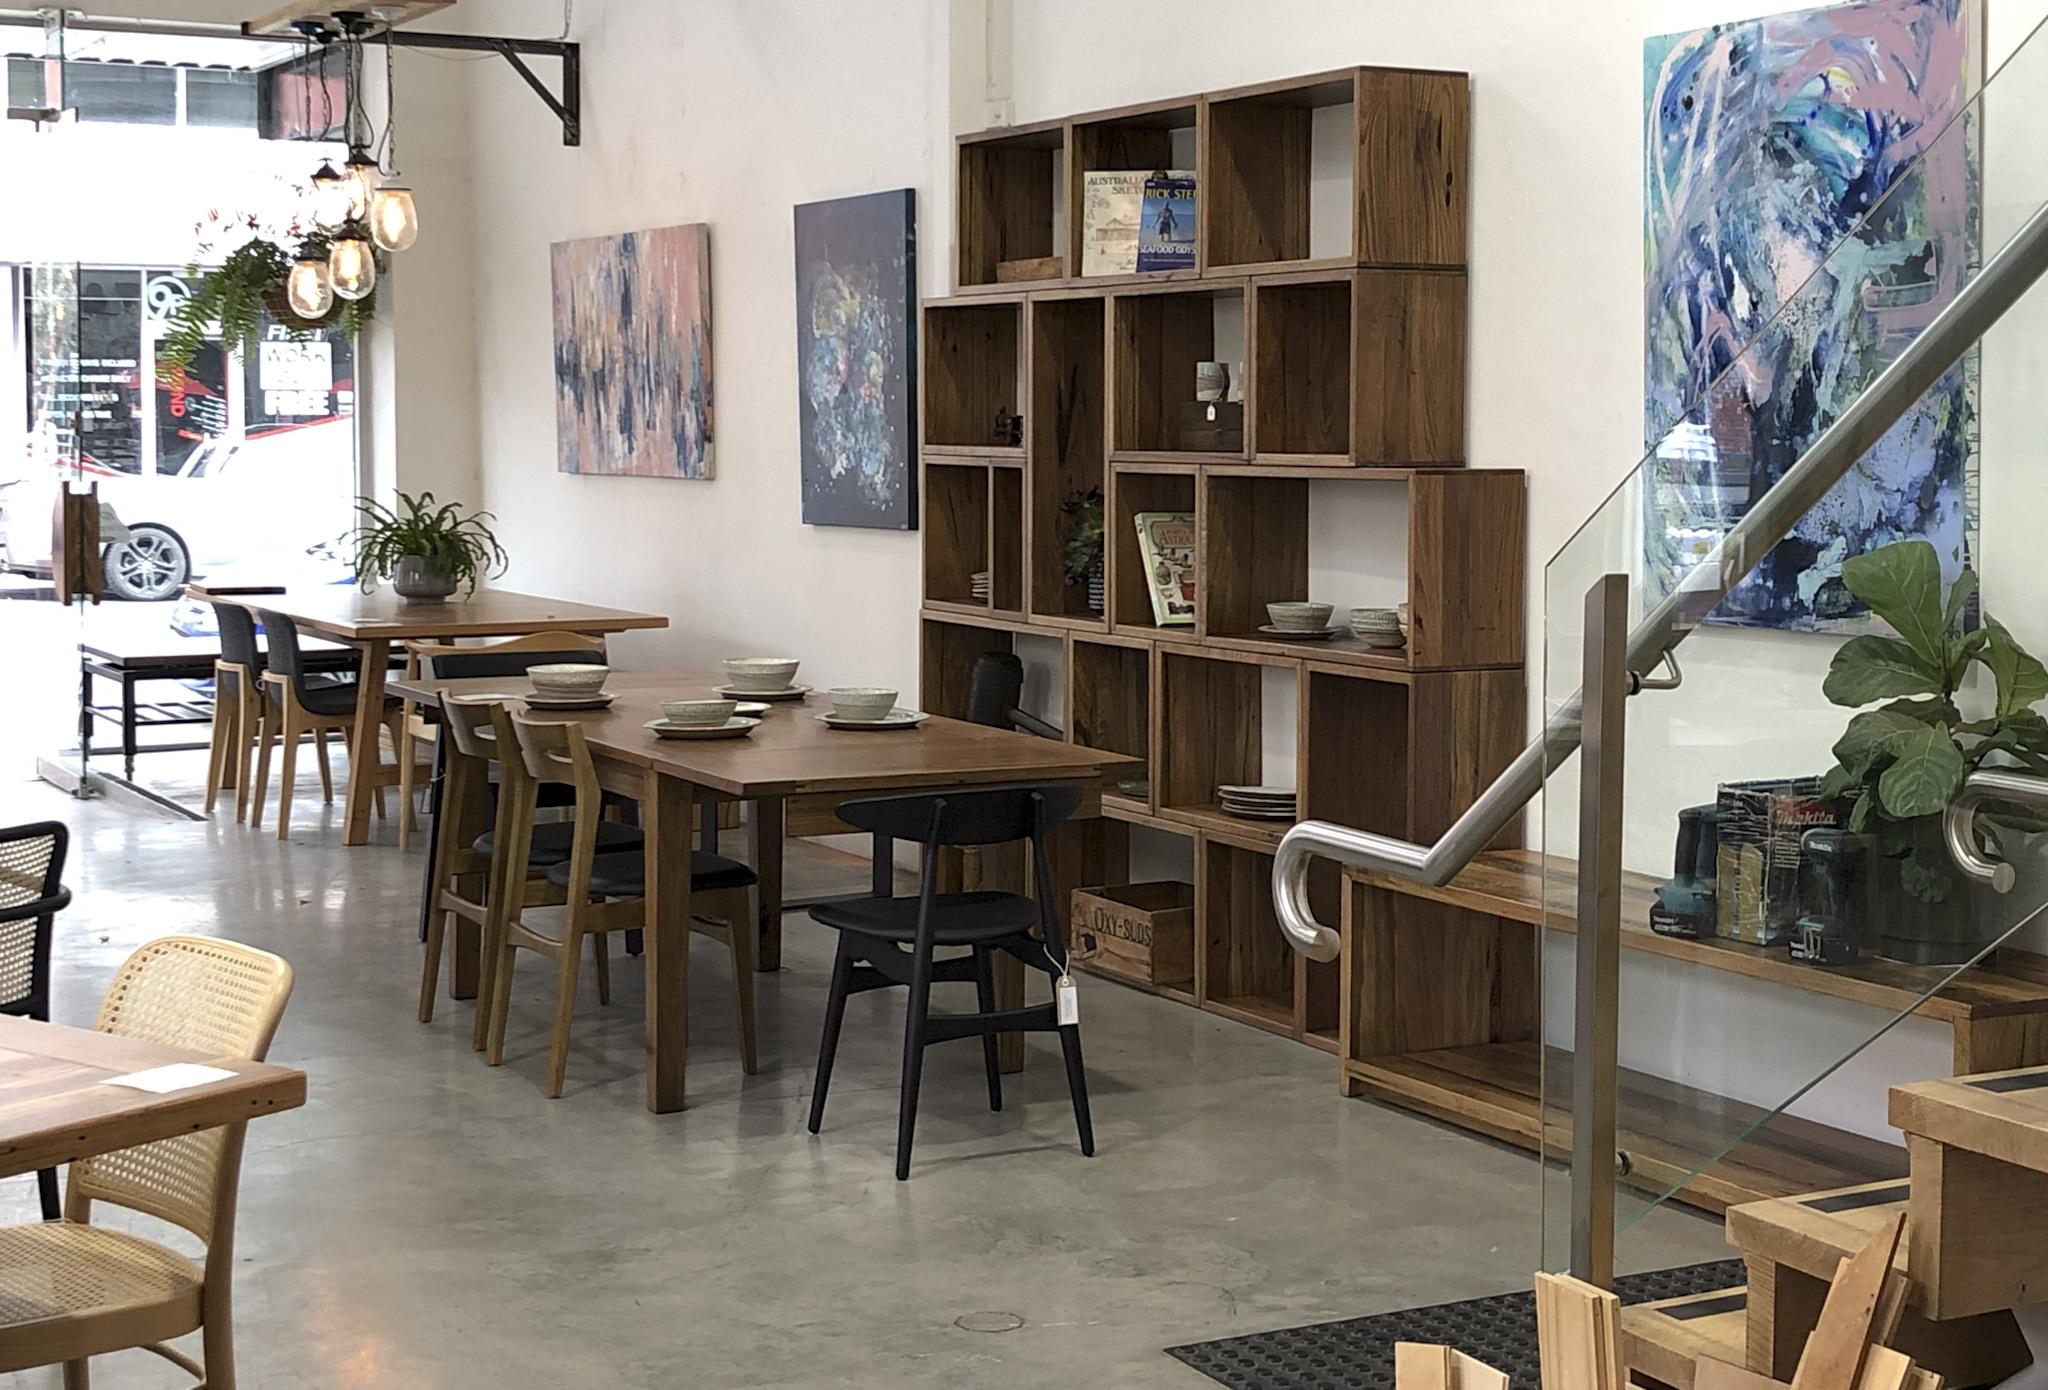 ND Recycled Timber Furniture